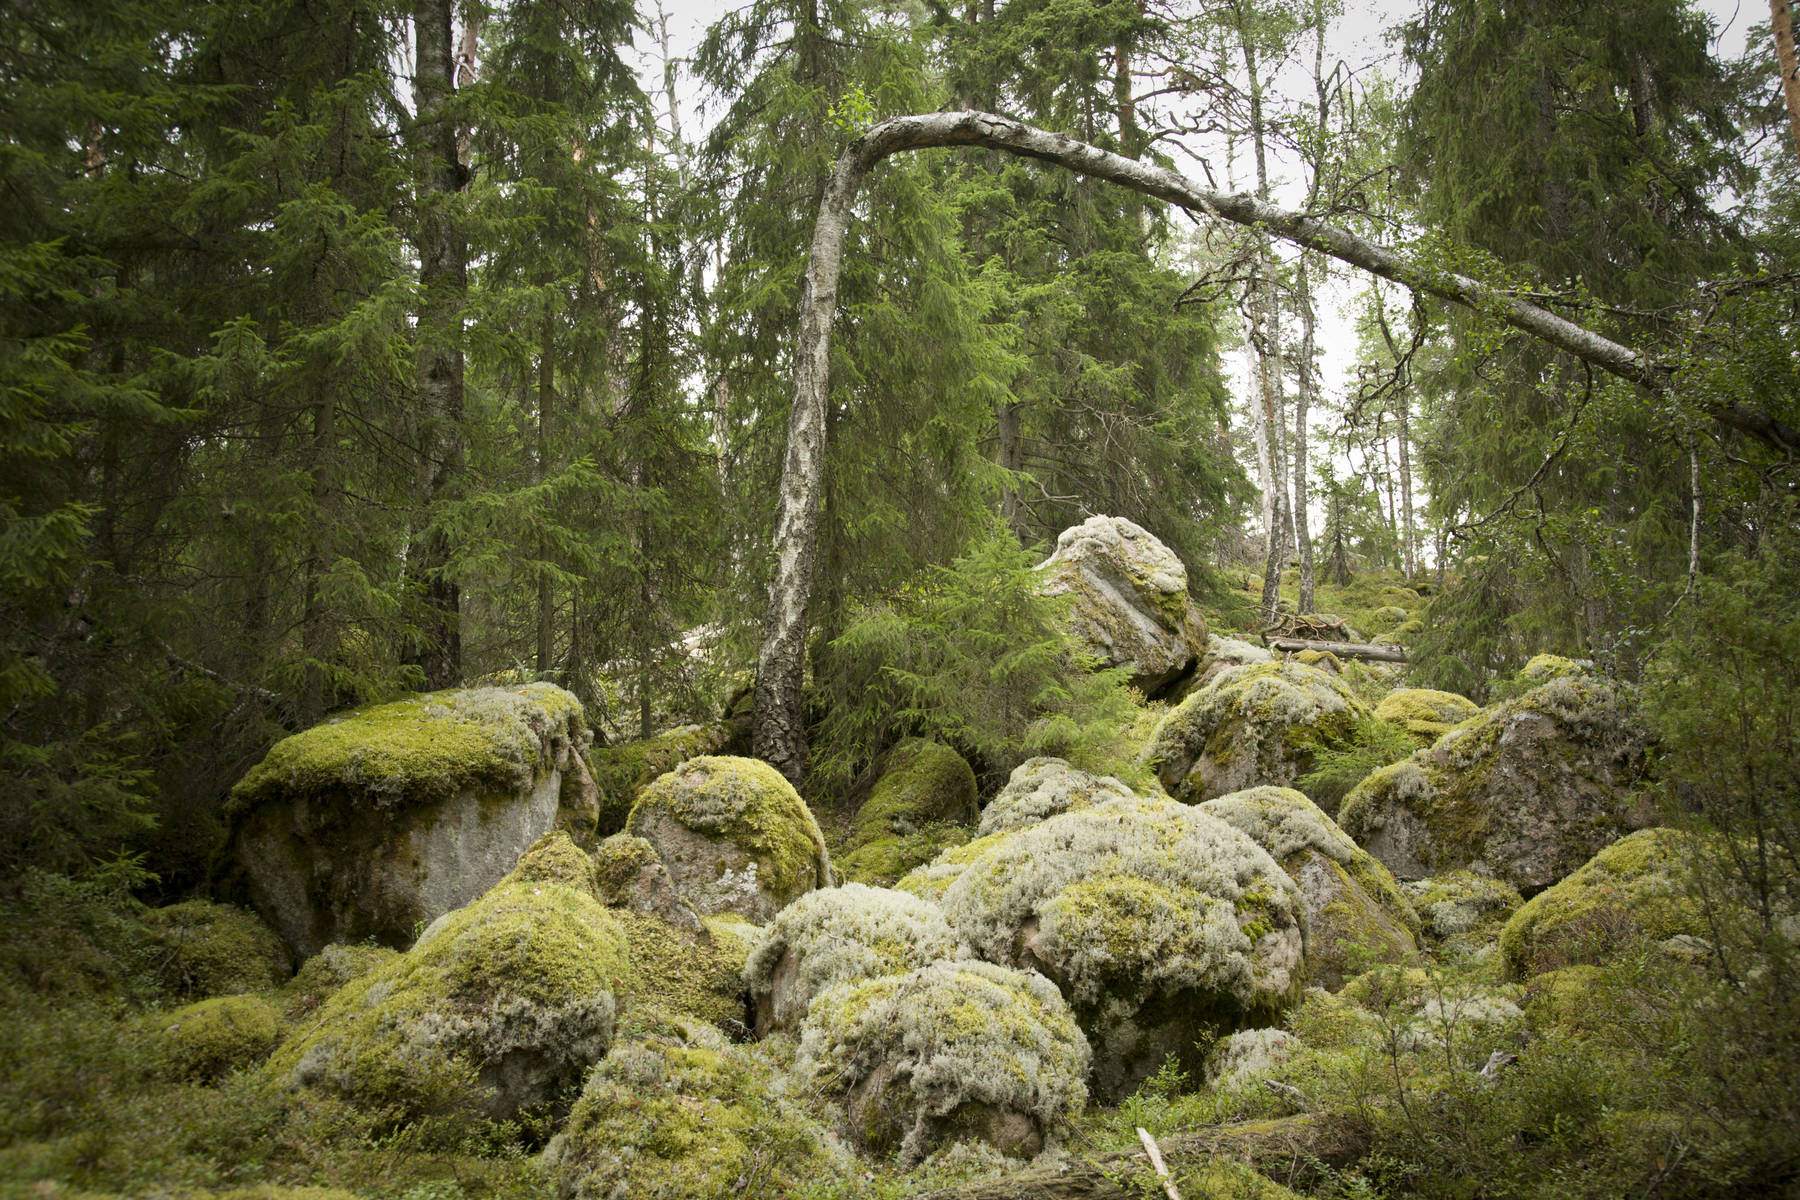 Norra Kvill nationalpark